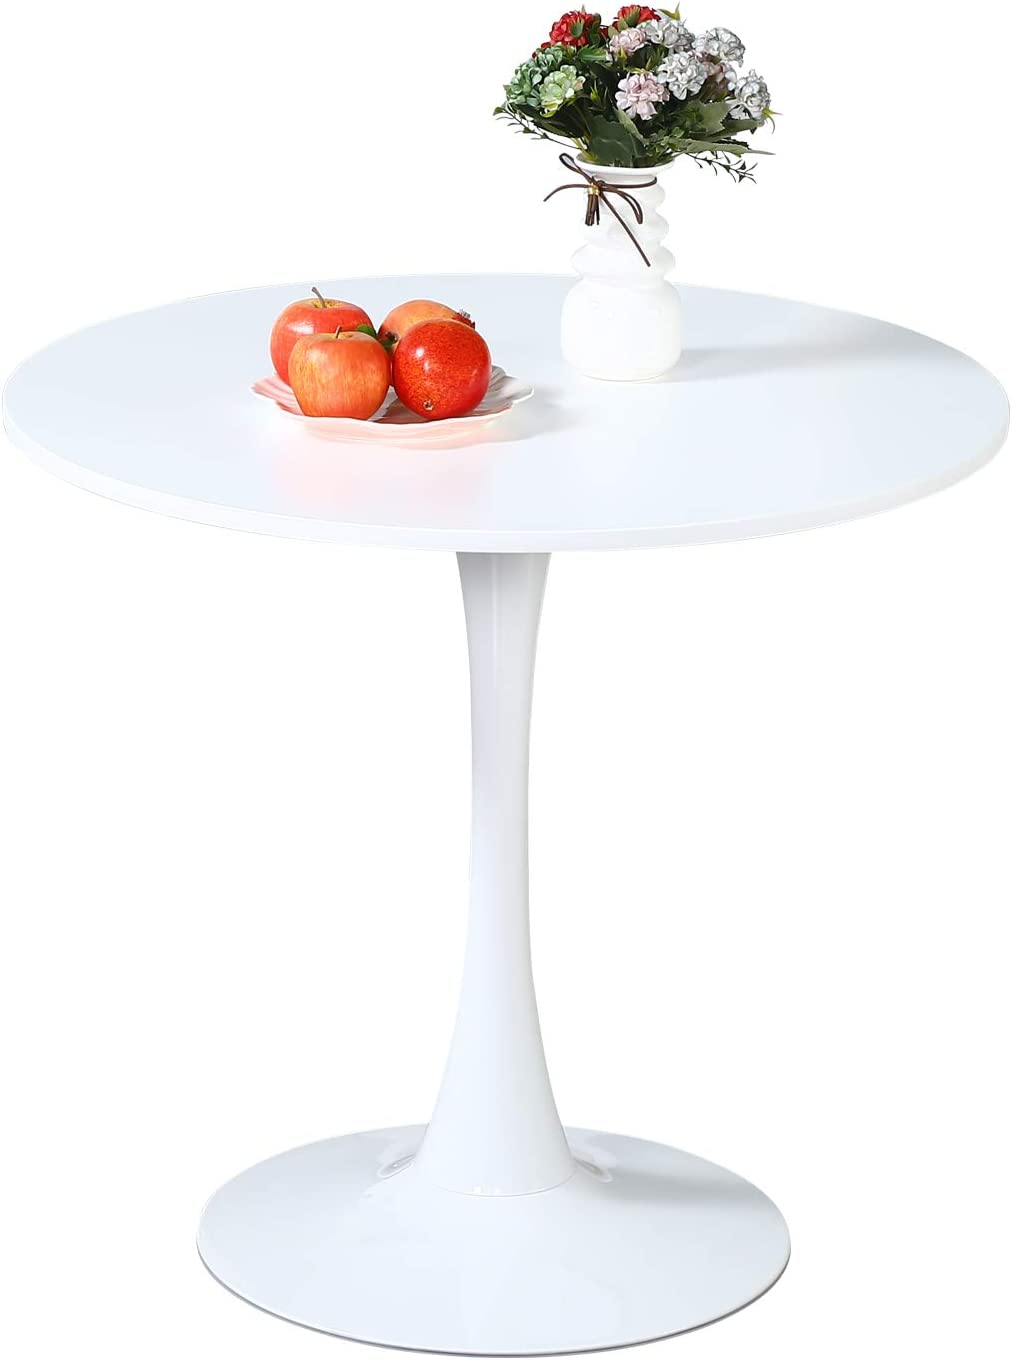 """9.9"""" White Round Dining Table   Modern Dining Room Table with MDF Table  Top and Metal Pedestal Base for Kitchen and Dining Room Leisure Table for 9  ..."""